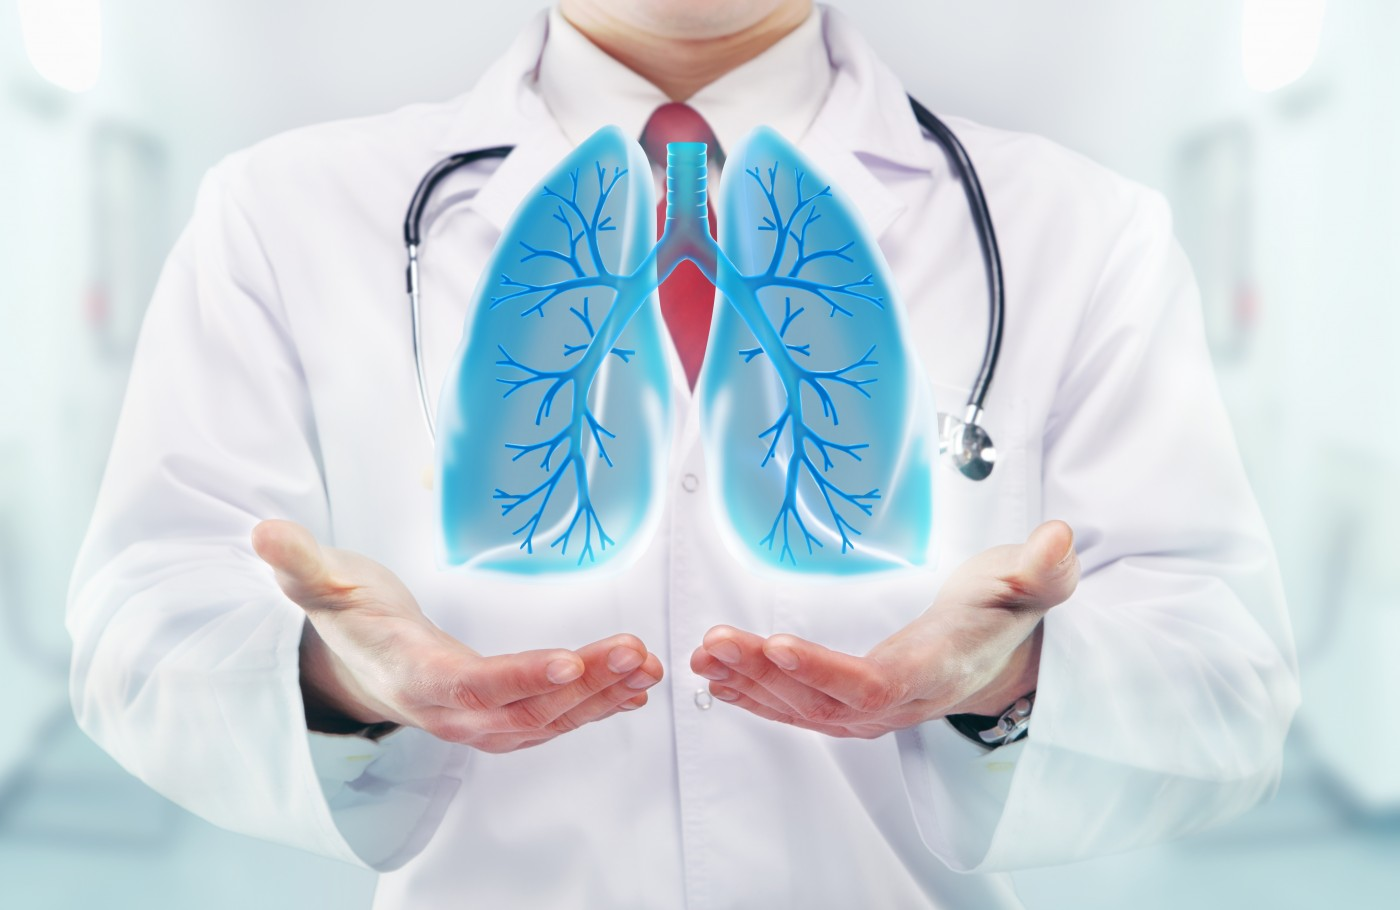 Lung Ultrasound for Diagnosing Pediatric Pneumonia May Be Safe Alternative to Chest X-Ray